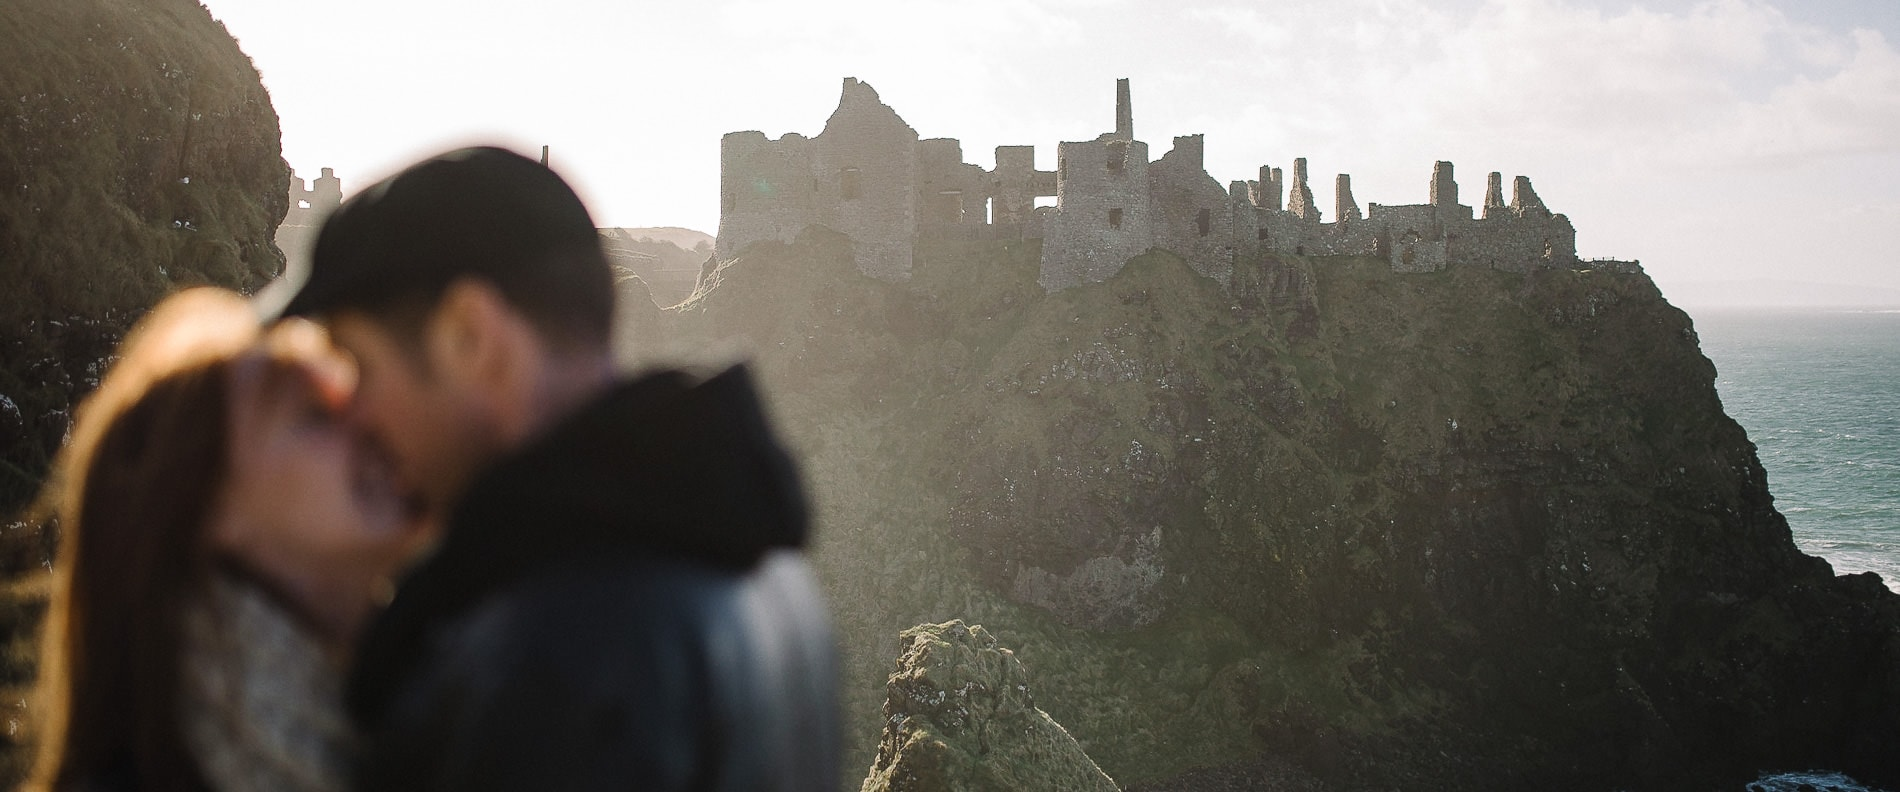 Dunluce Castle Engagement photographer wedding